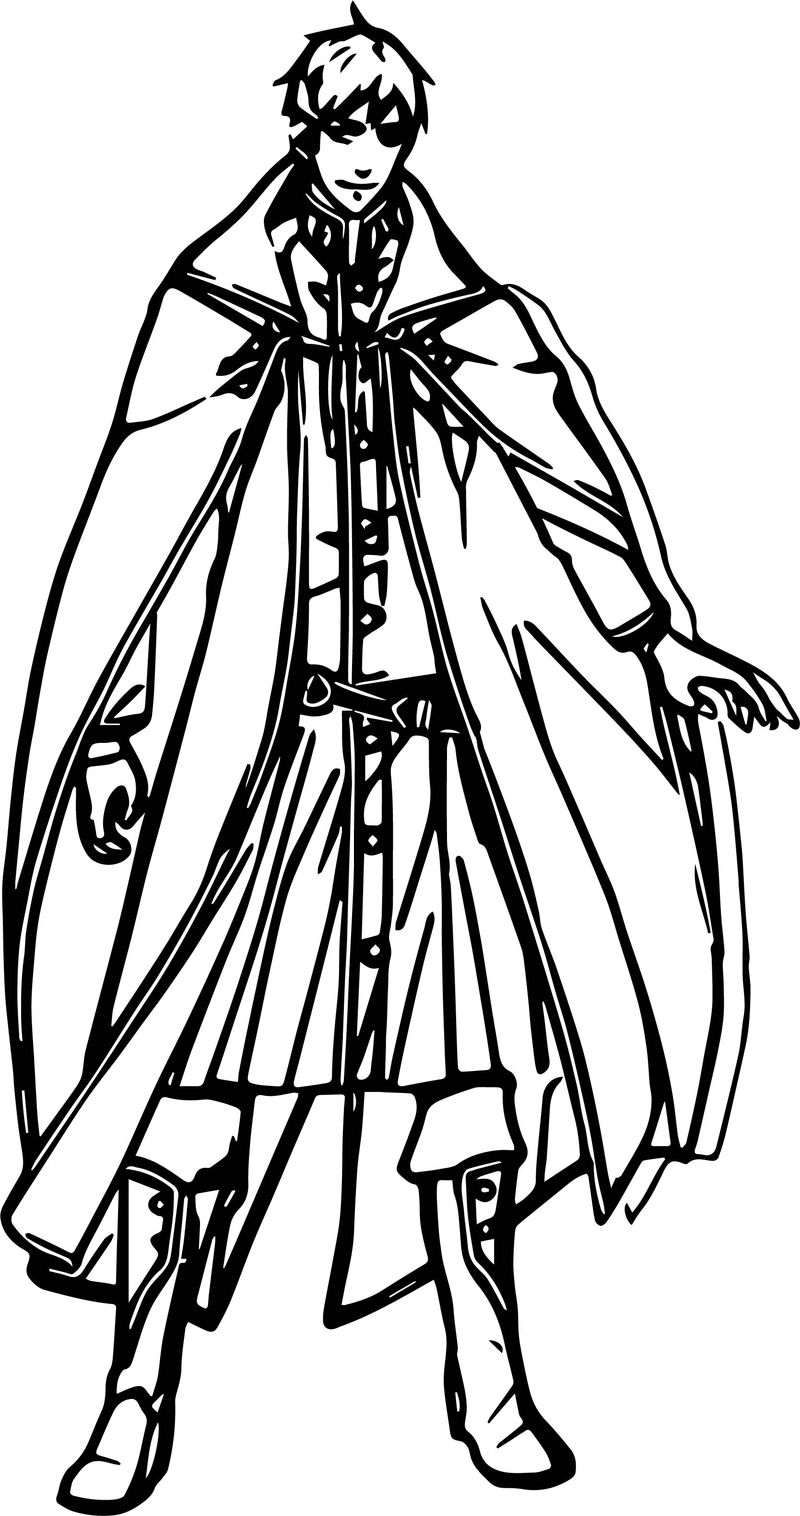 Character Knight Coloring Page